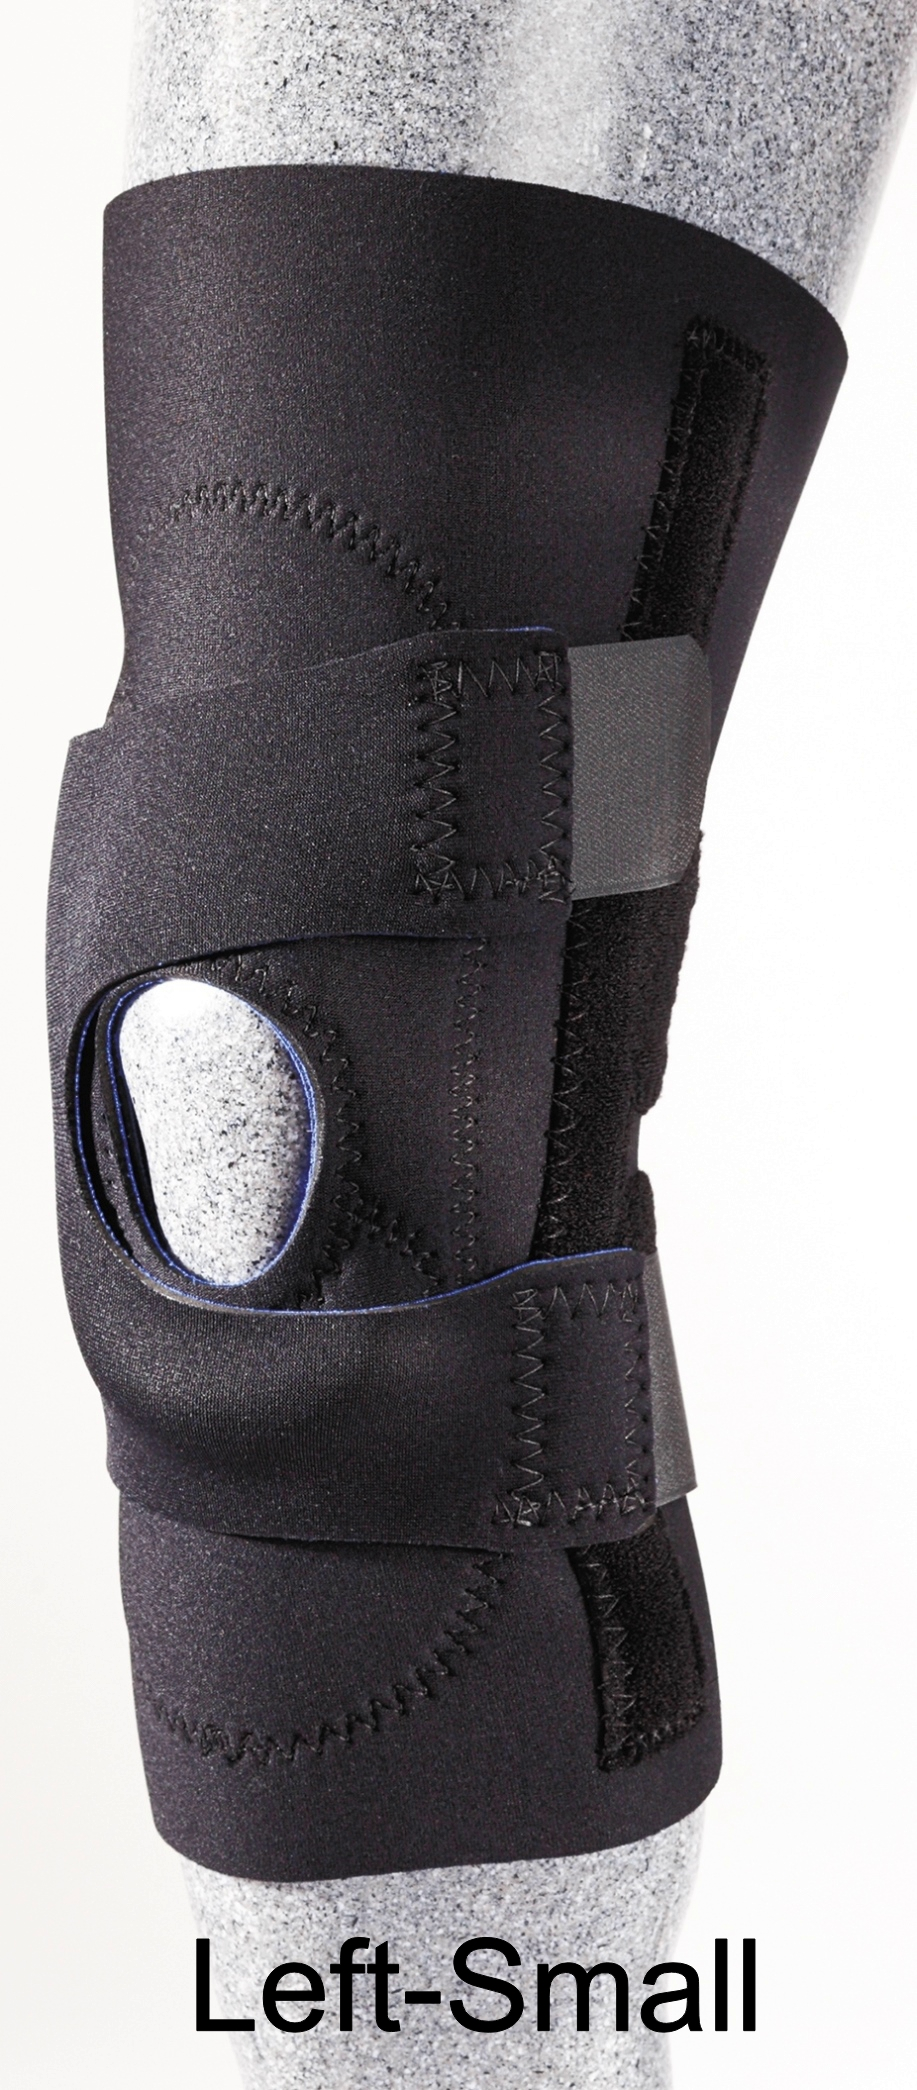 Patellar Stabilizer (J-Brace) with Pull Straps - Left - Small - (13